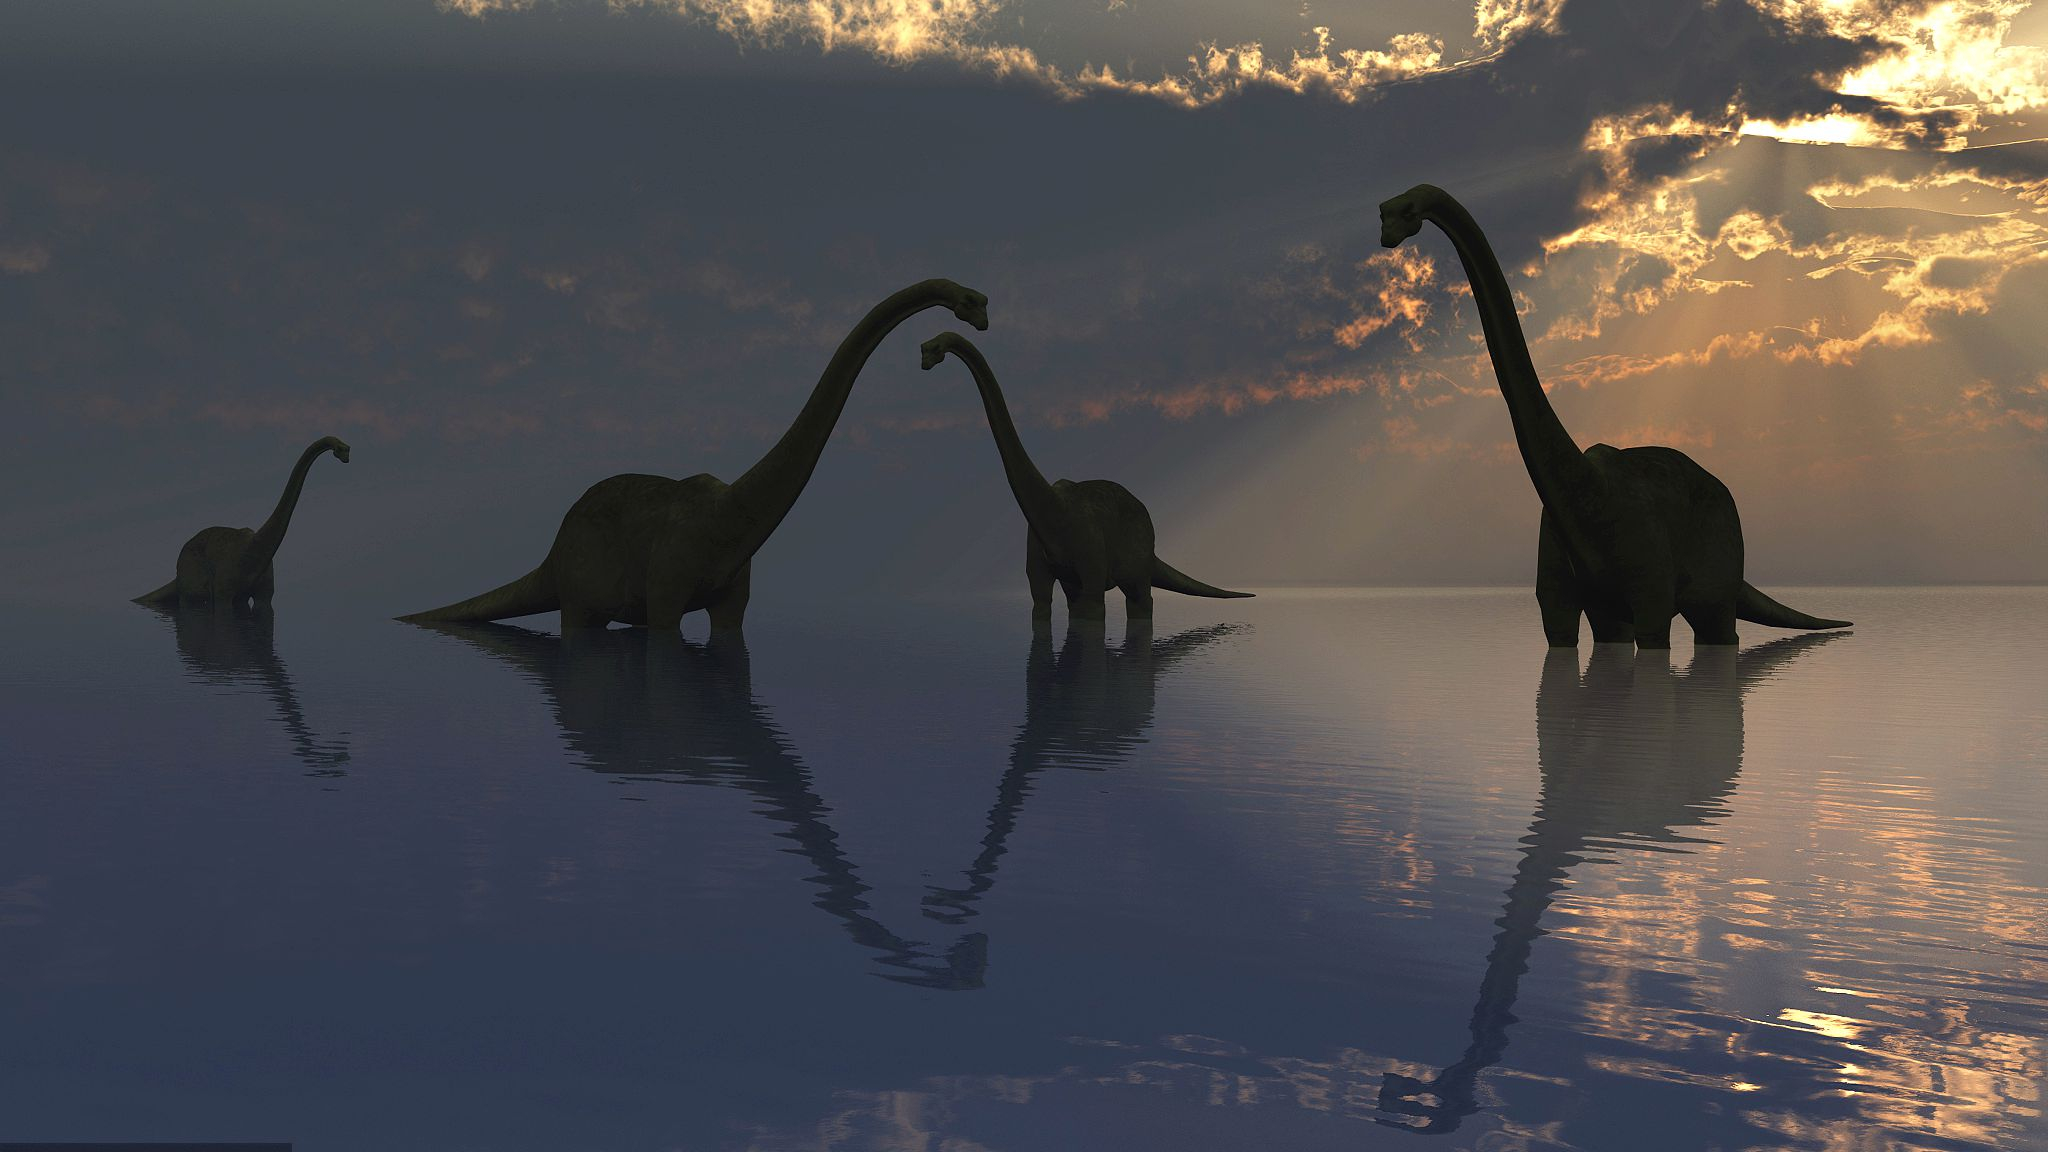 Paleontologists discover new dinosaur species in Argentina